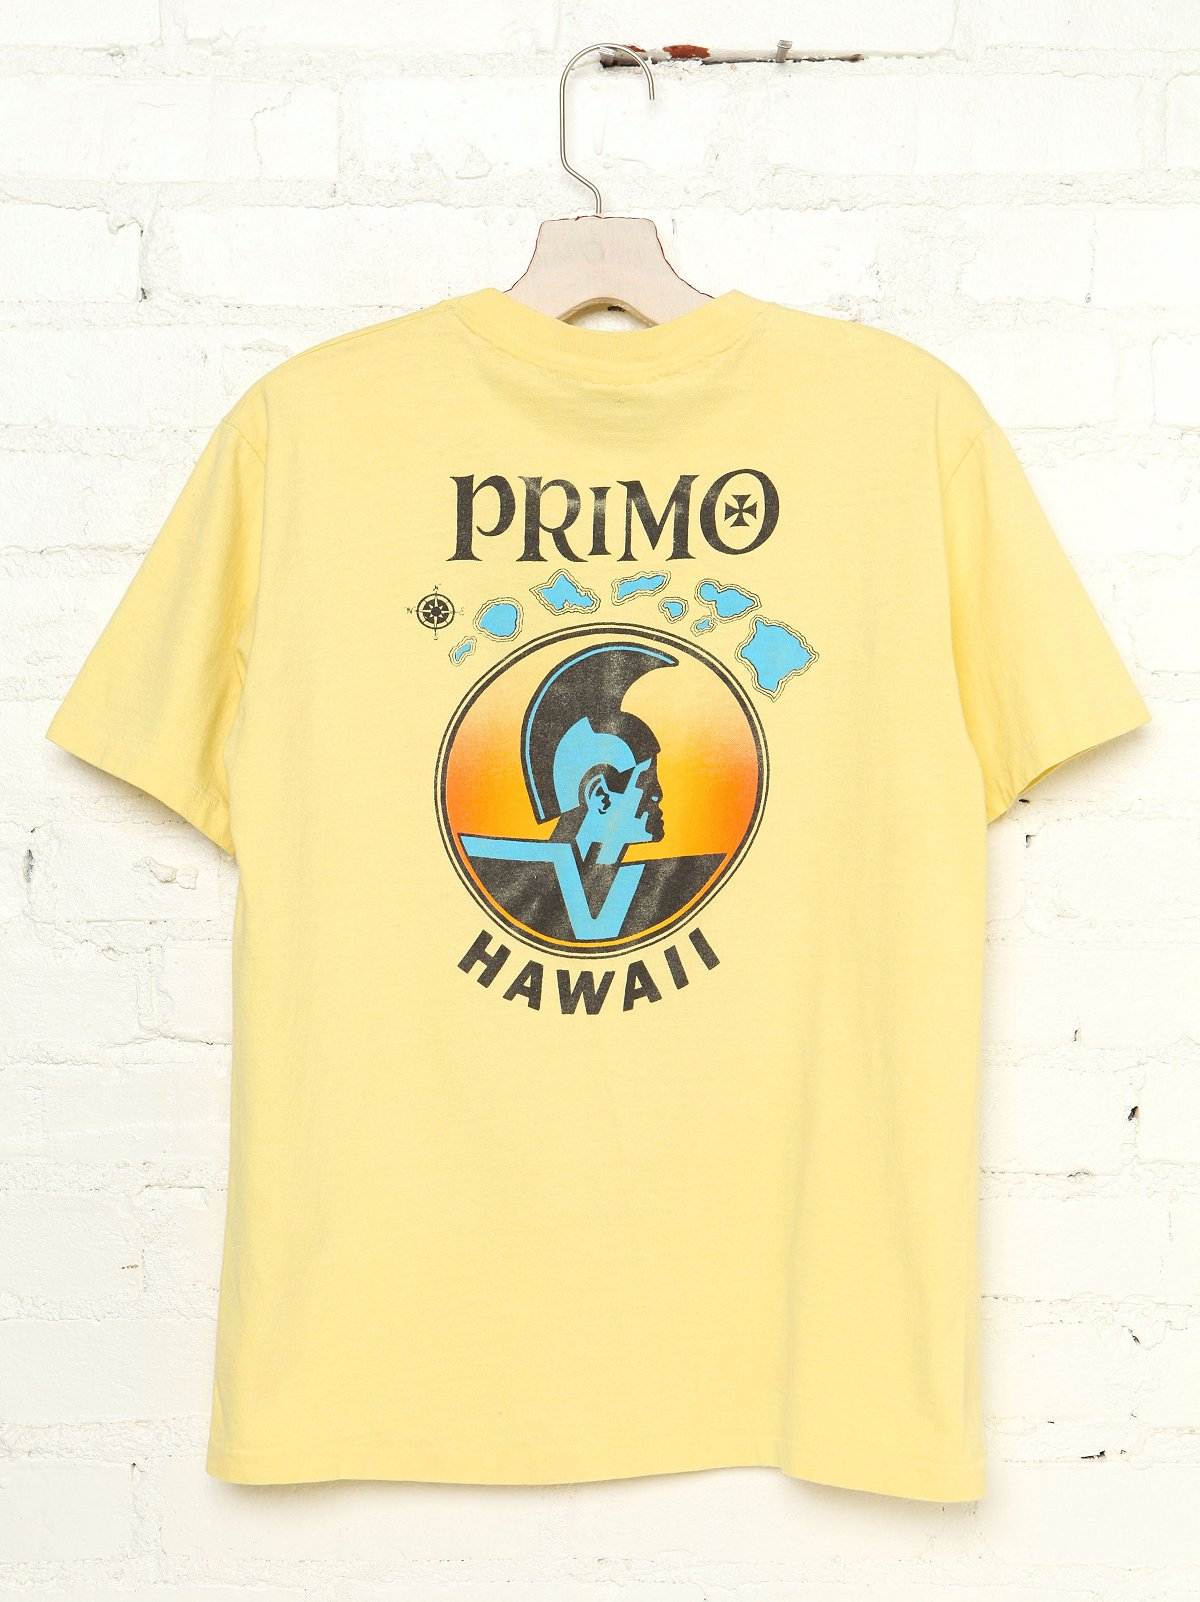 Vintage PRIMO Hawaii Graphic Tee